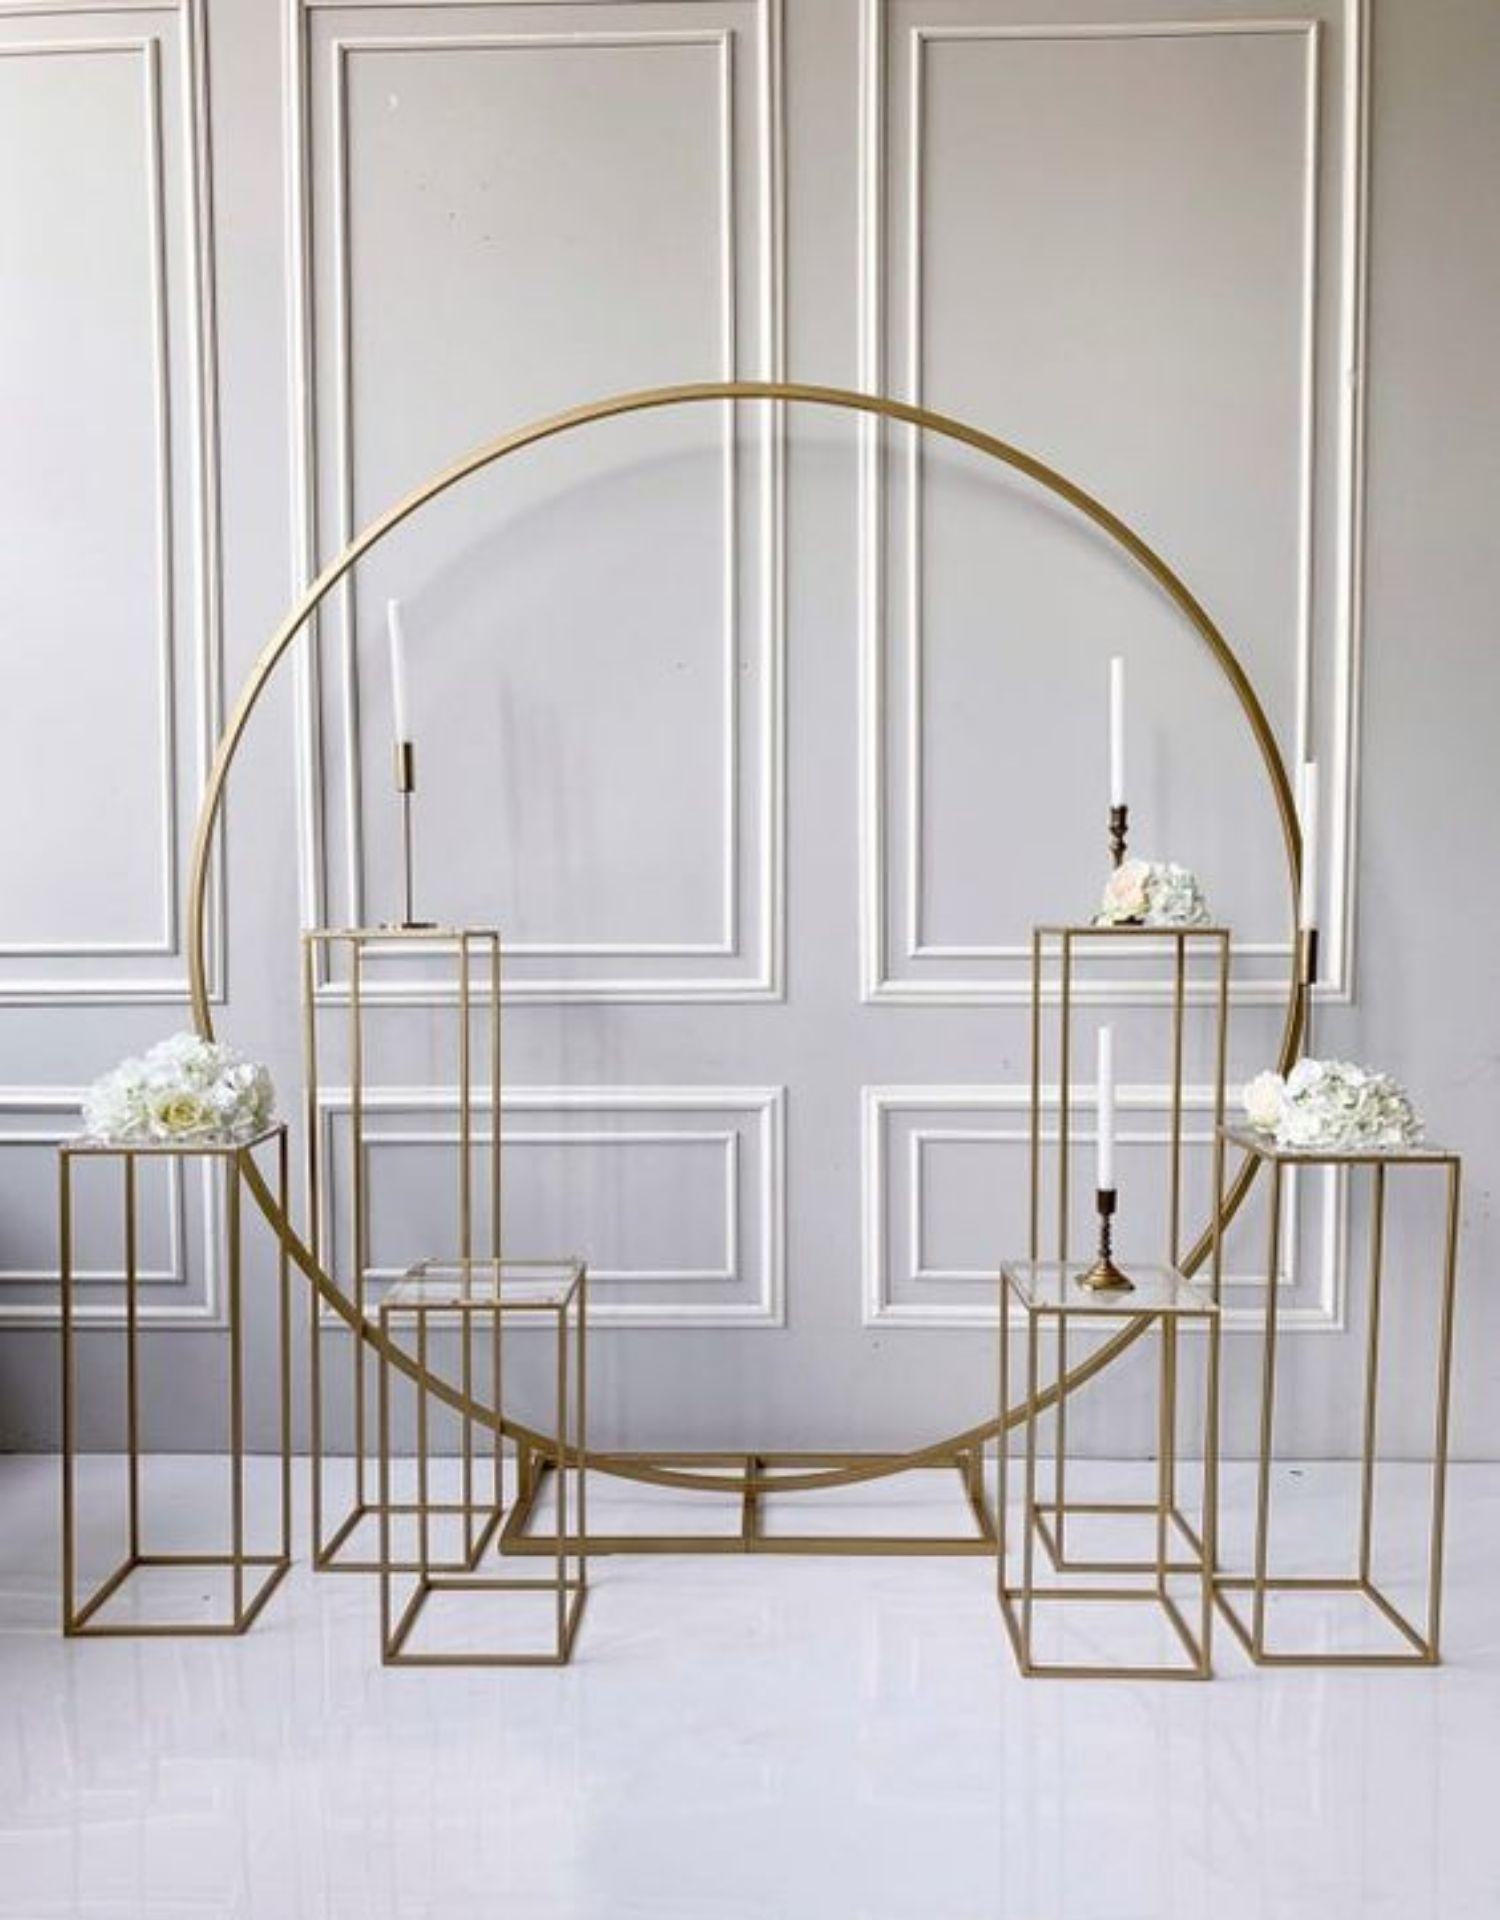 Metal plinths grand-event geometric props wedding decoration backdrops arch outdoor lawn flowers door balloons rack iron circle Birthday Party Sash Background